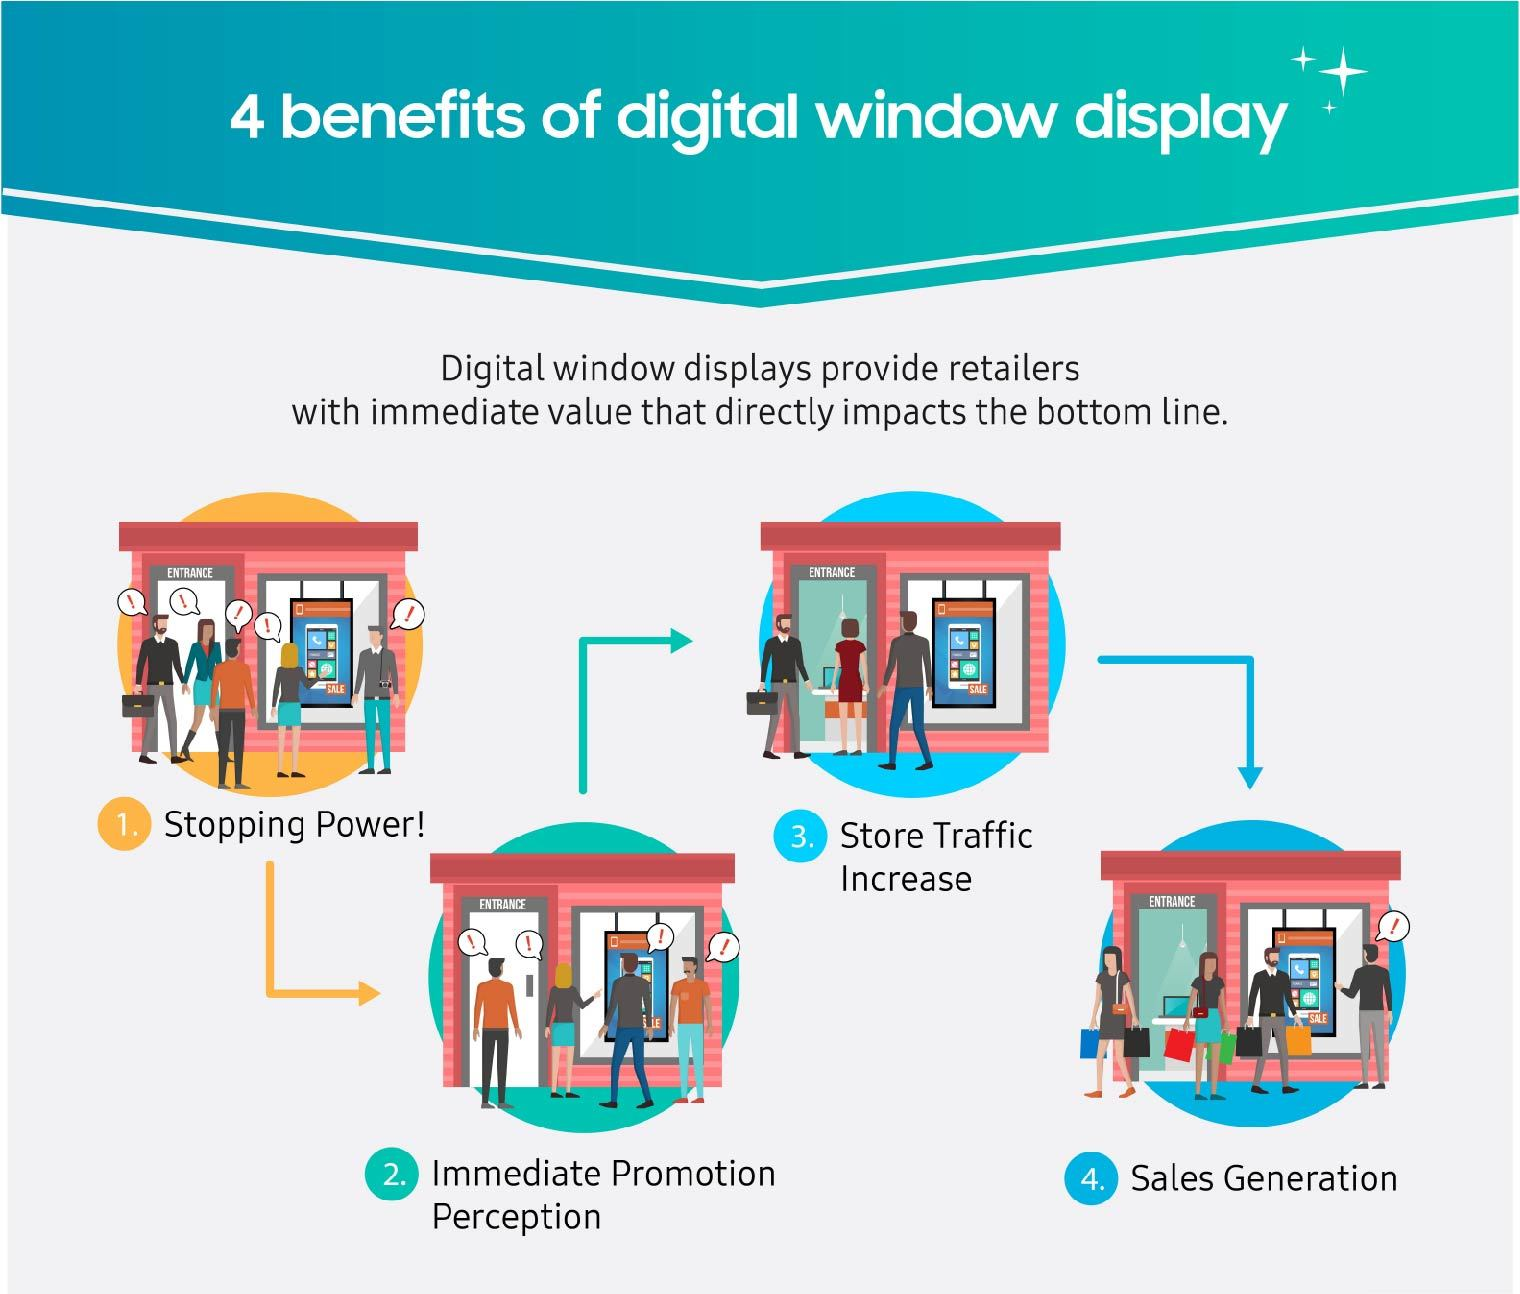 Finding ROI after converting to digital signage